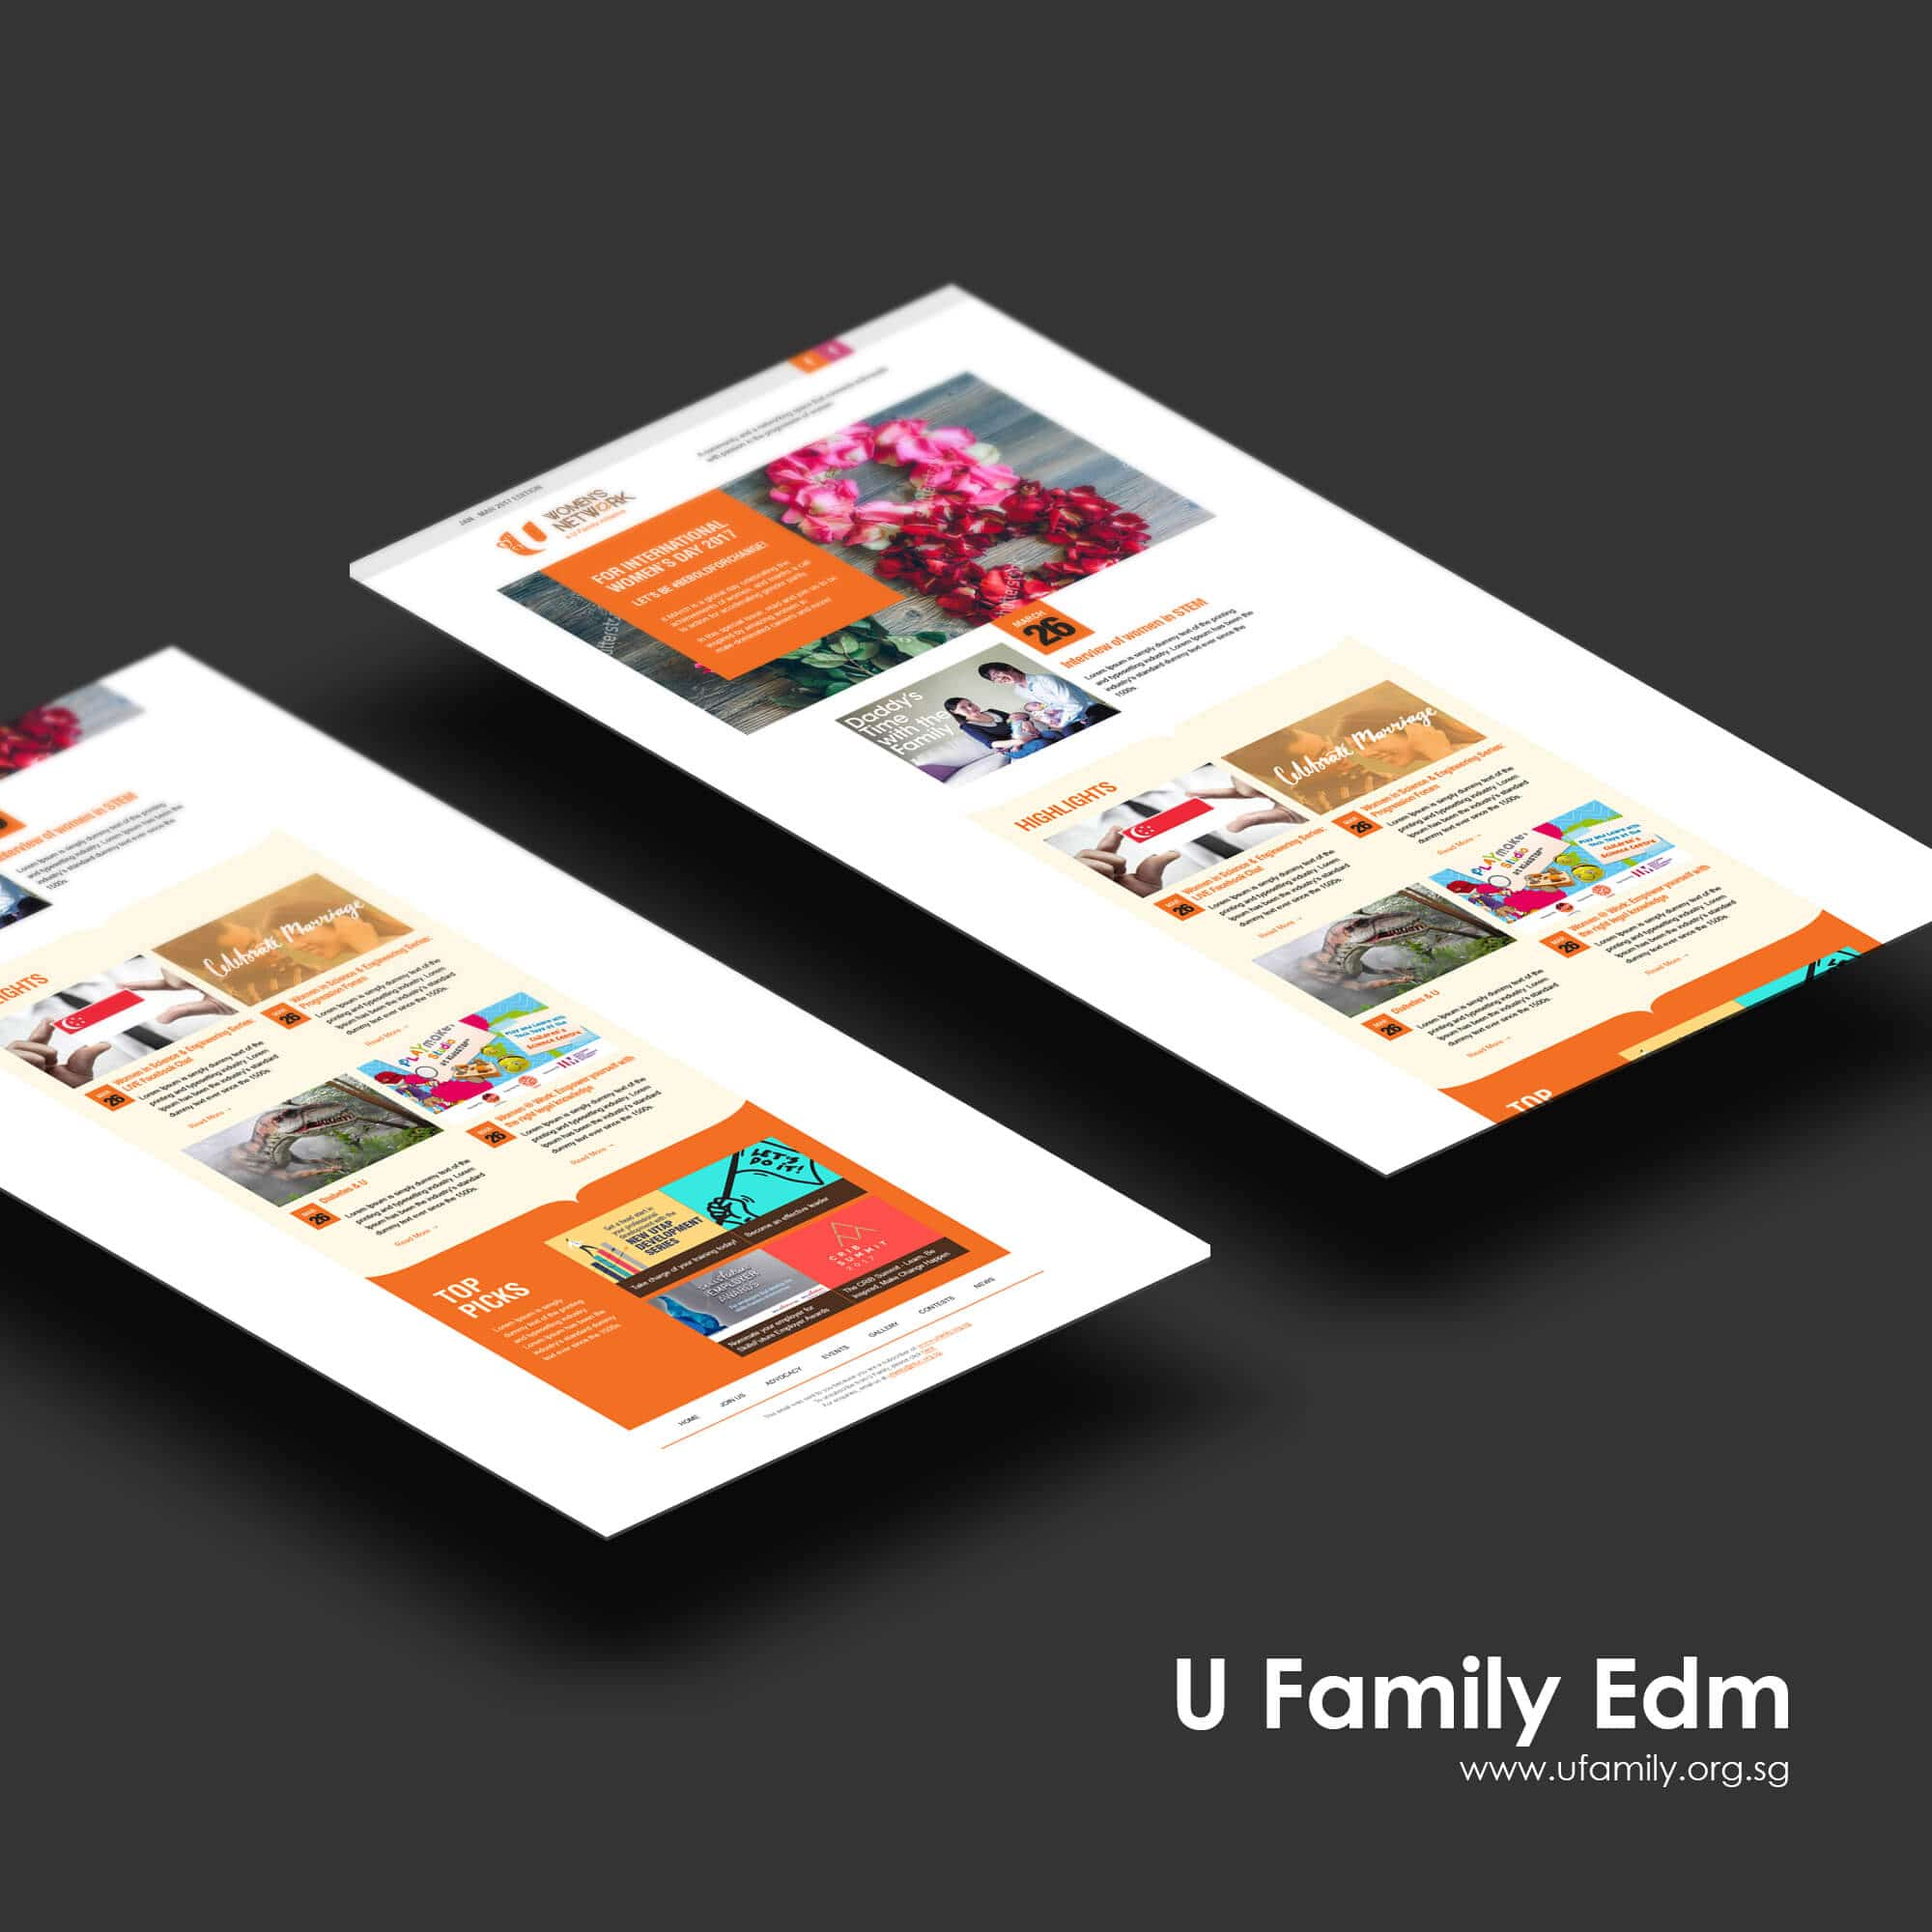 Singapore best web design u women's network edm design